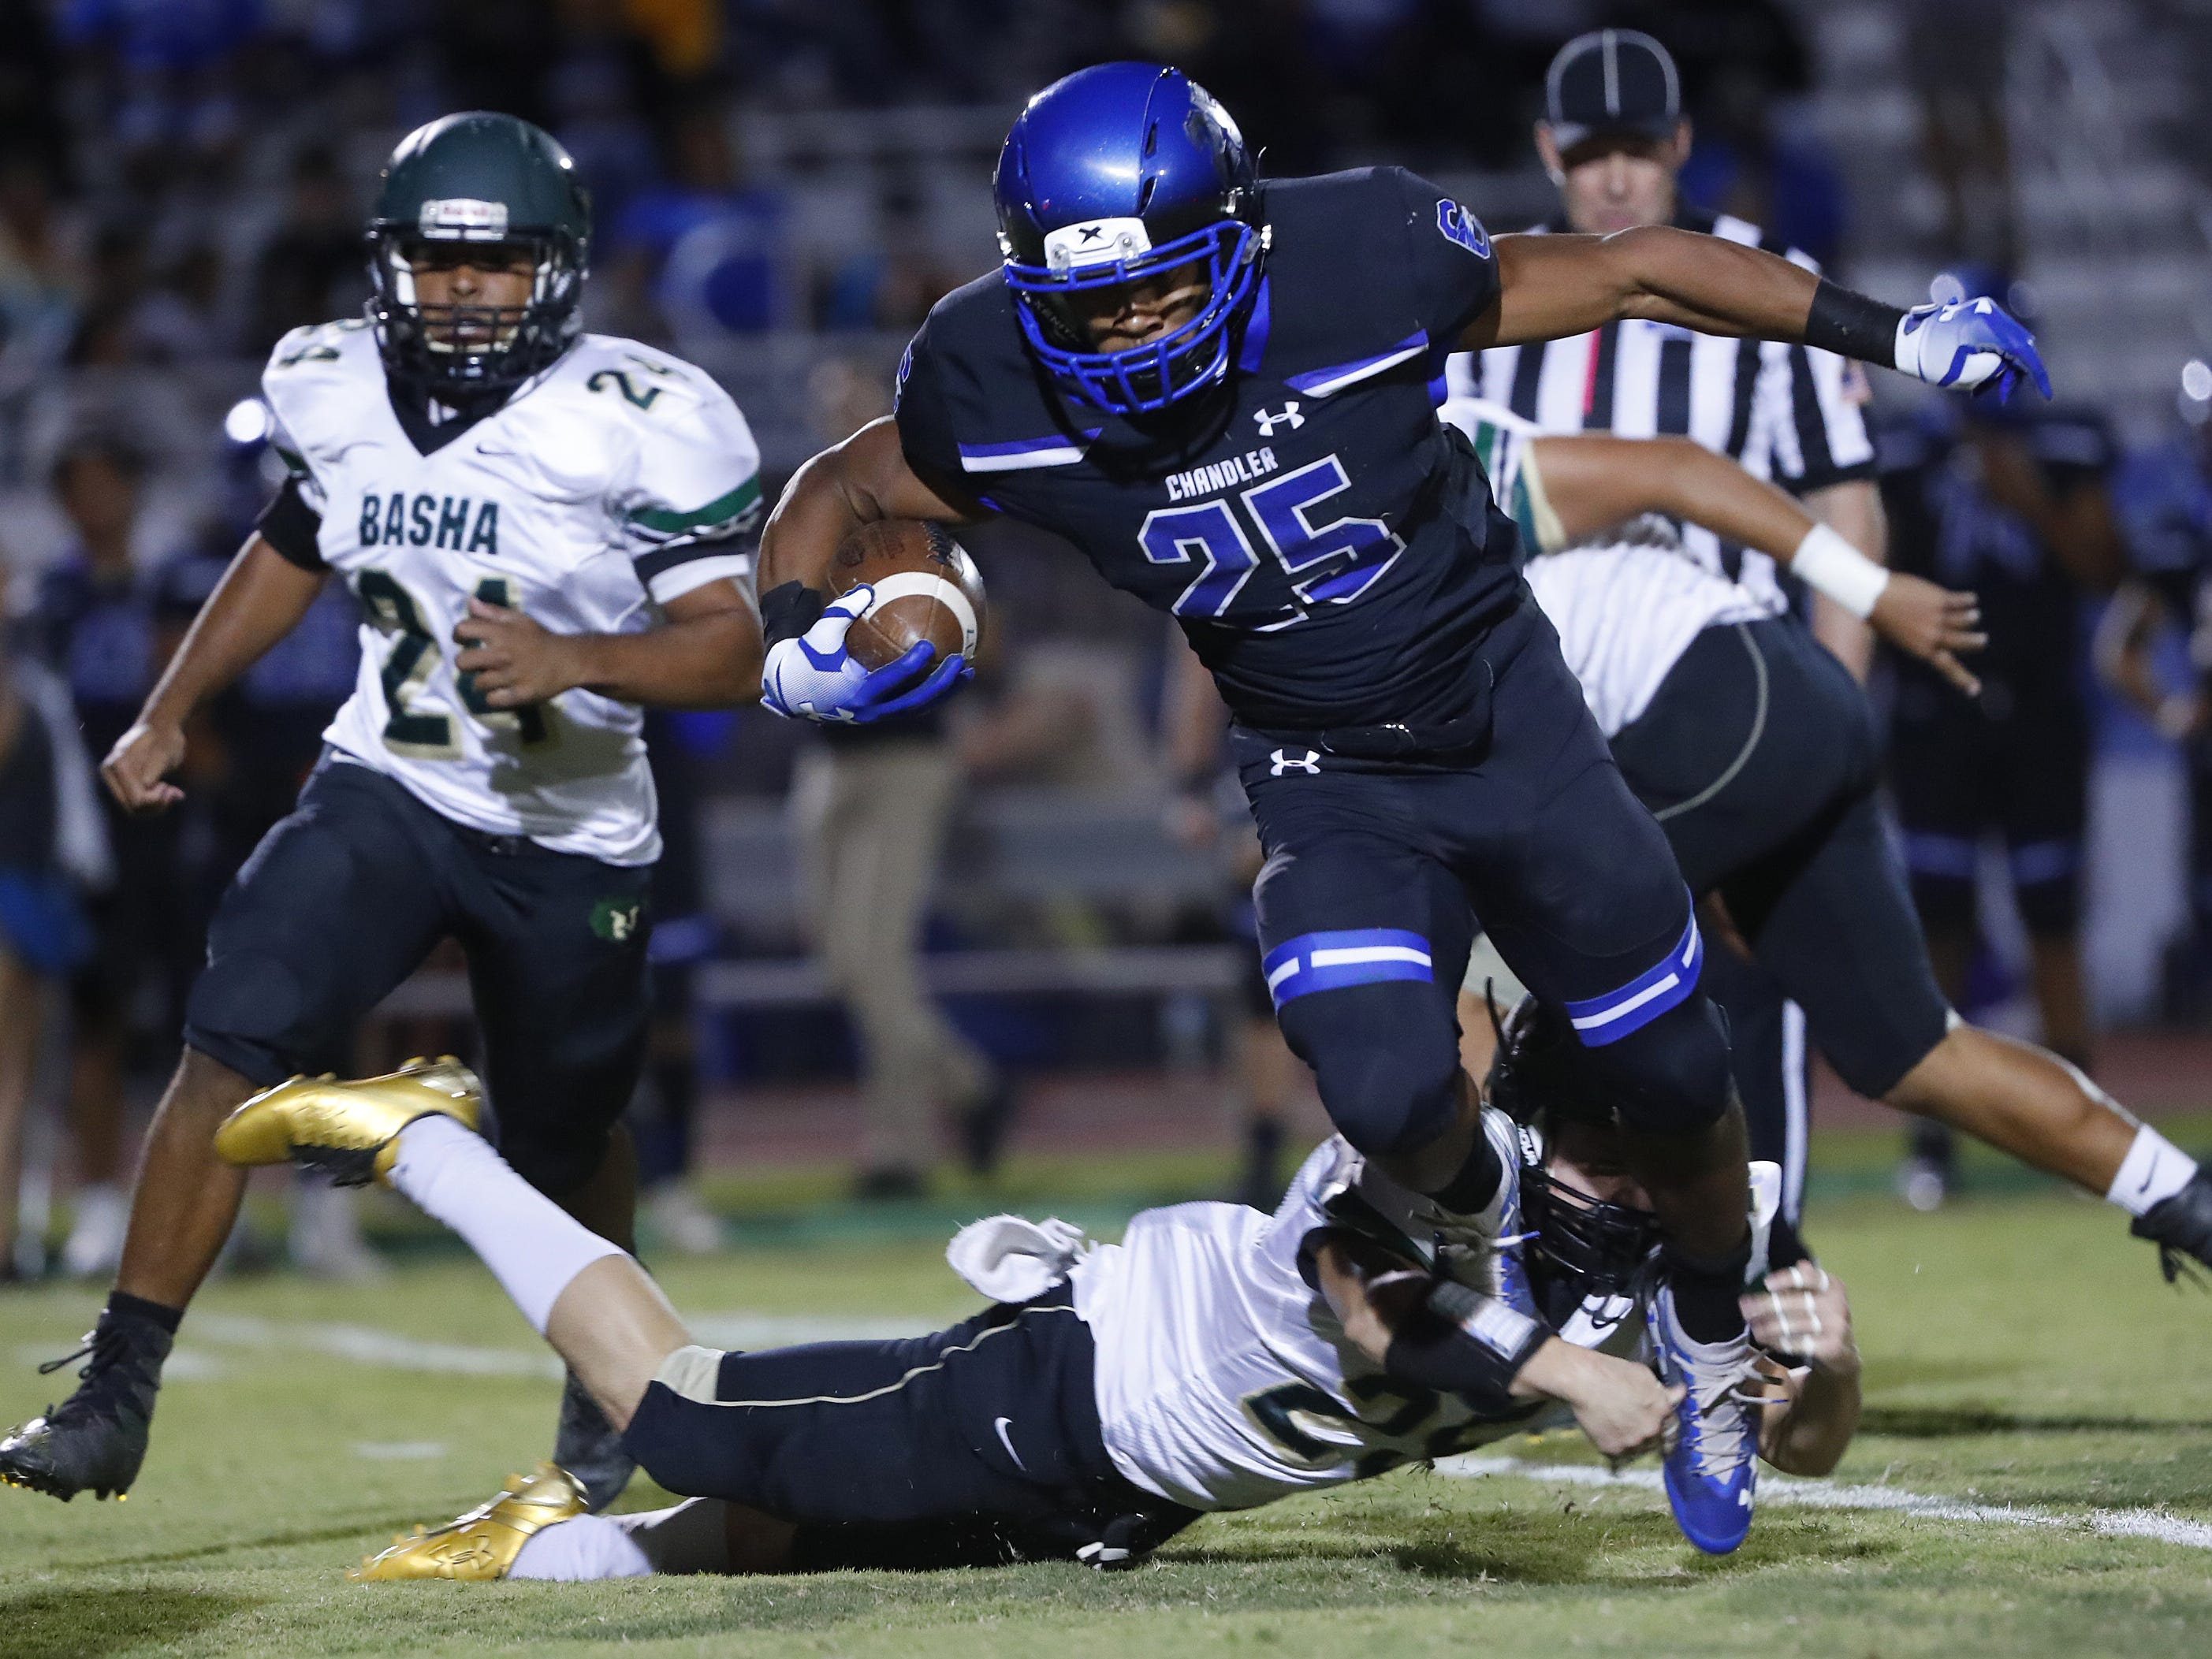 Chandler's DeCarlos Brooks (25) breaks a tackle from Basha's Dylan Quinn (25) at Chandler High School in Chandler, Ariz. on October 12, 2018.